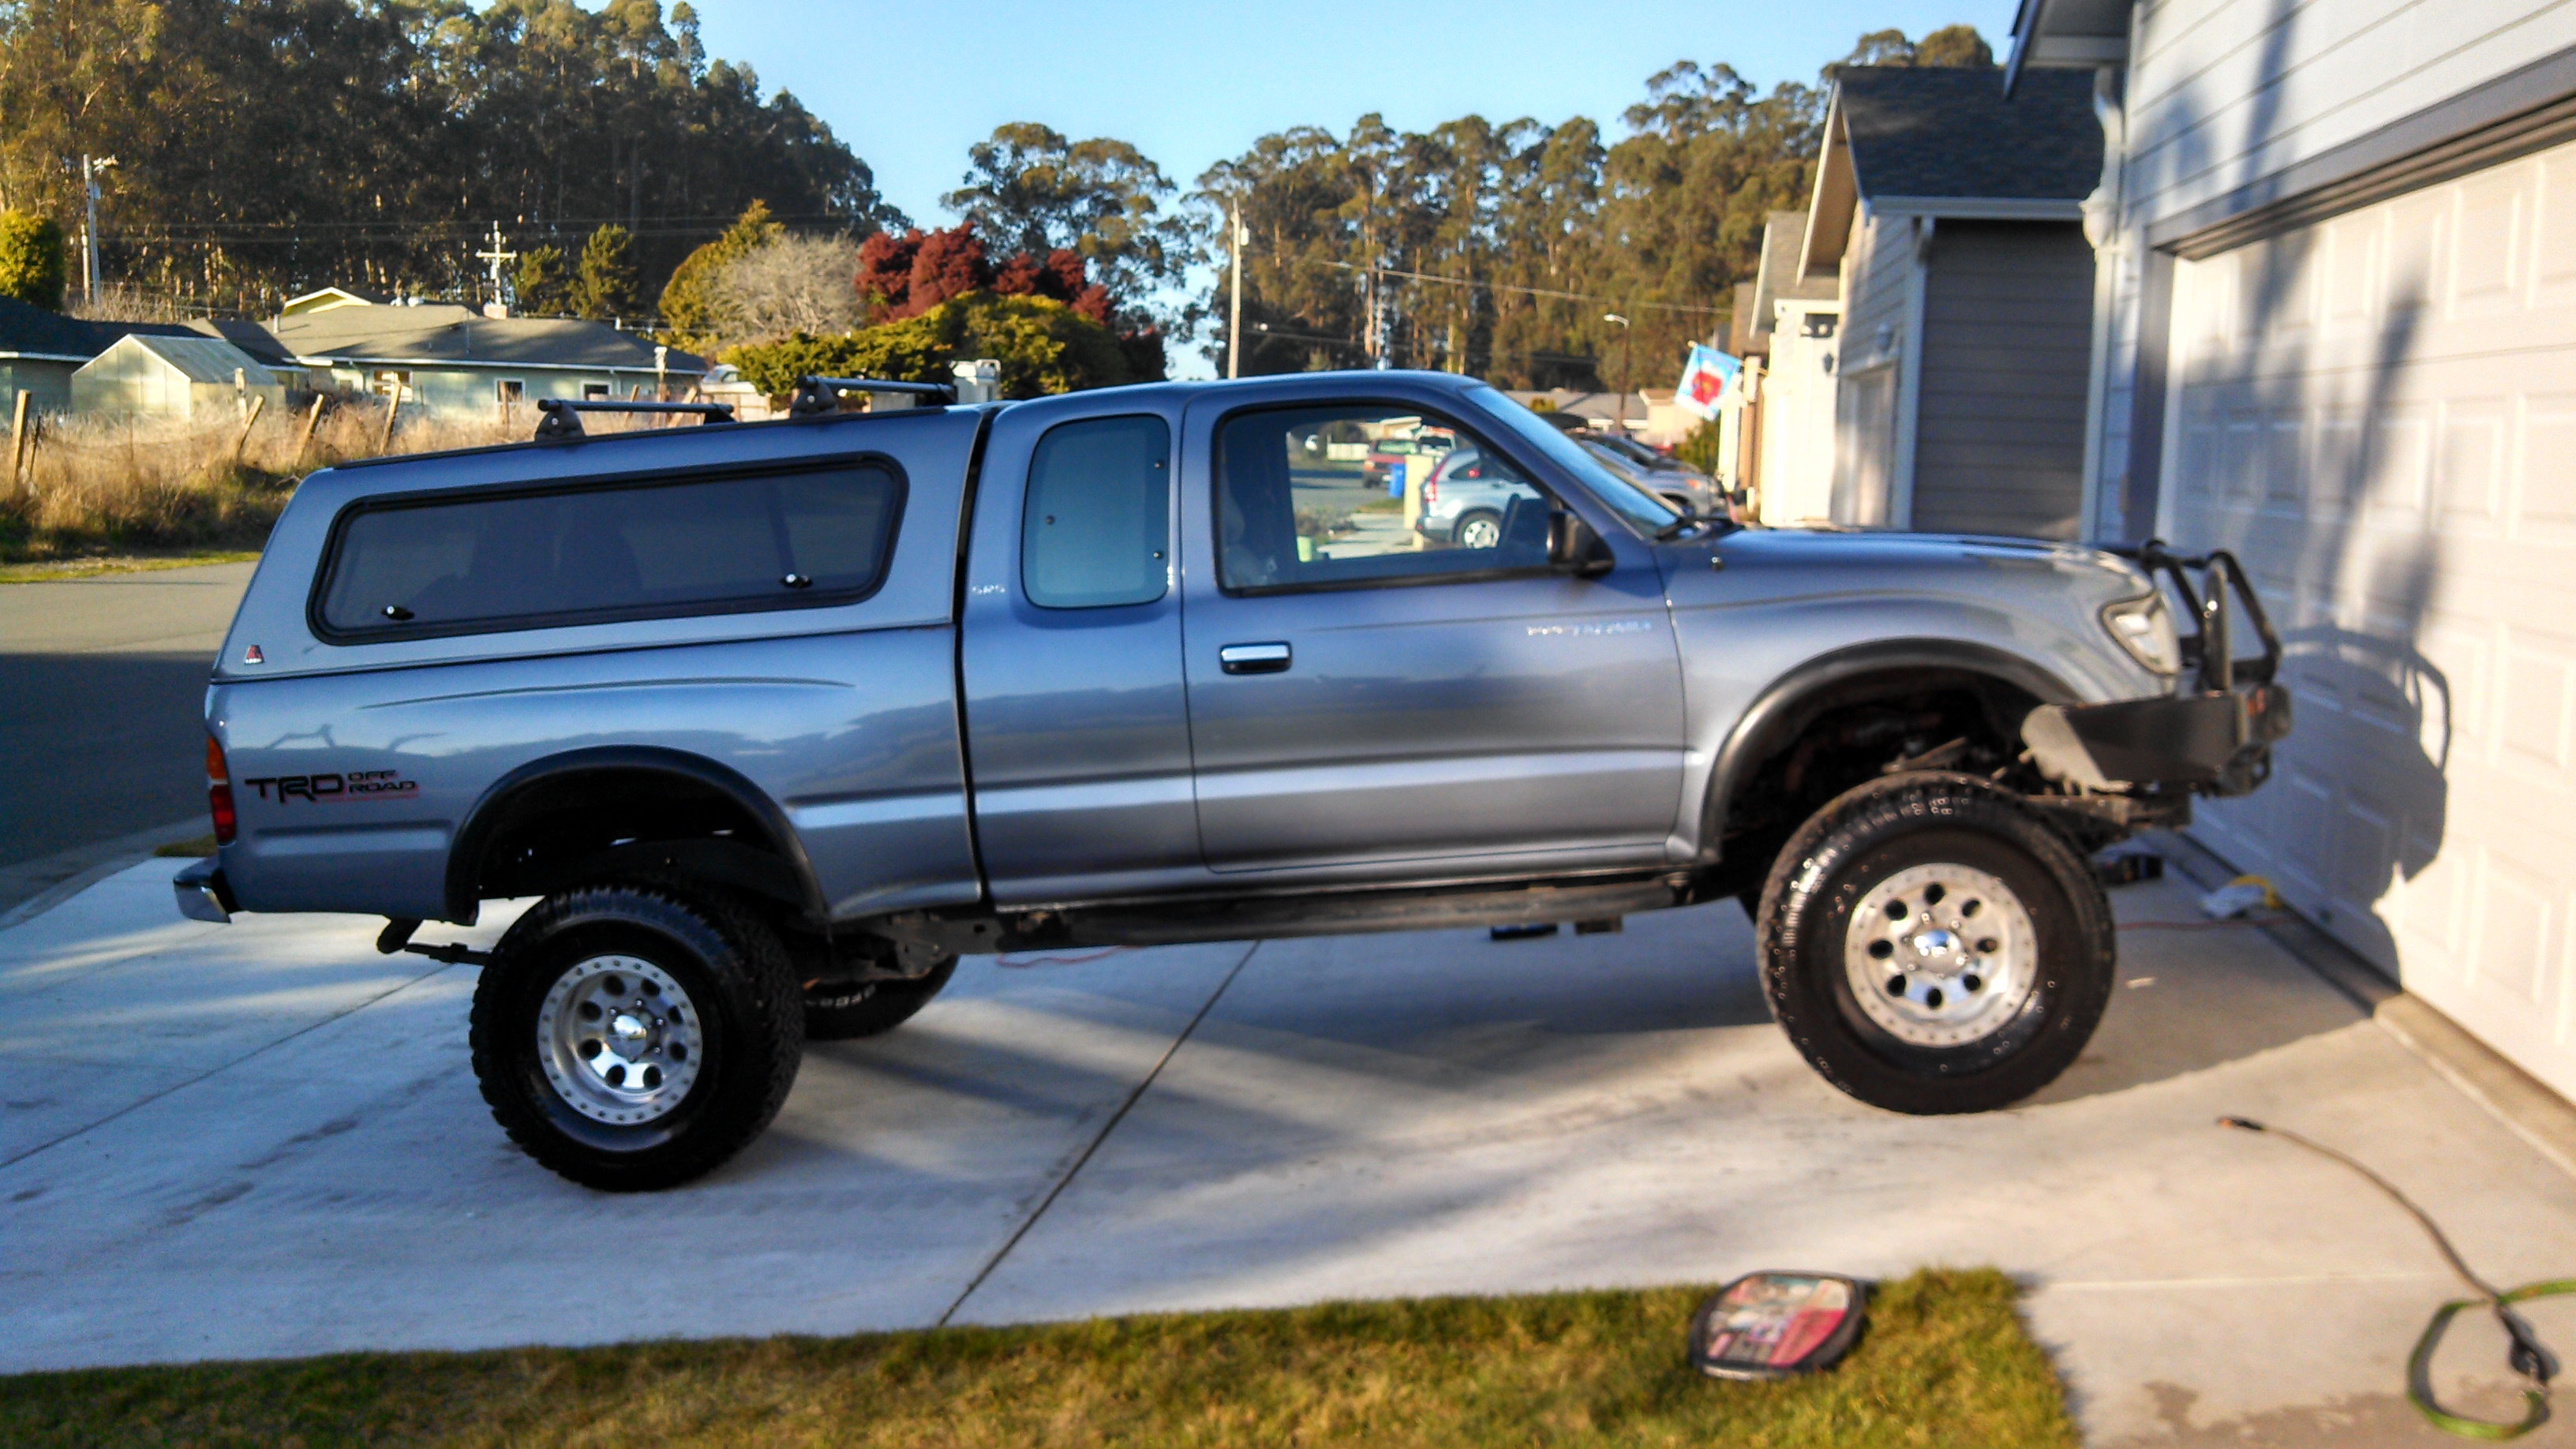 Be On the Lookout Toyota Tacoma Containing Firearms Jewelry etc. Taken in u0027Brazenu0027 Burglary [UPDATE With Sheriffu0027s Press Release] & Be On the Lookout: Toyota Tacoma Containing Firearms Jewelry etc ...